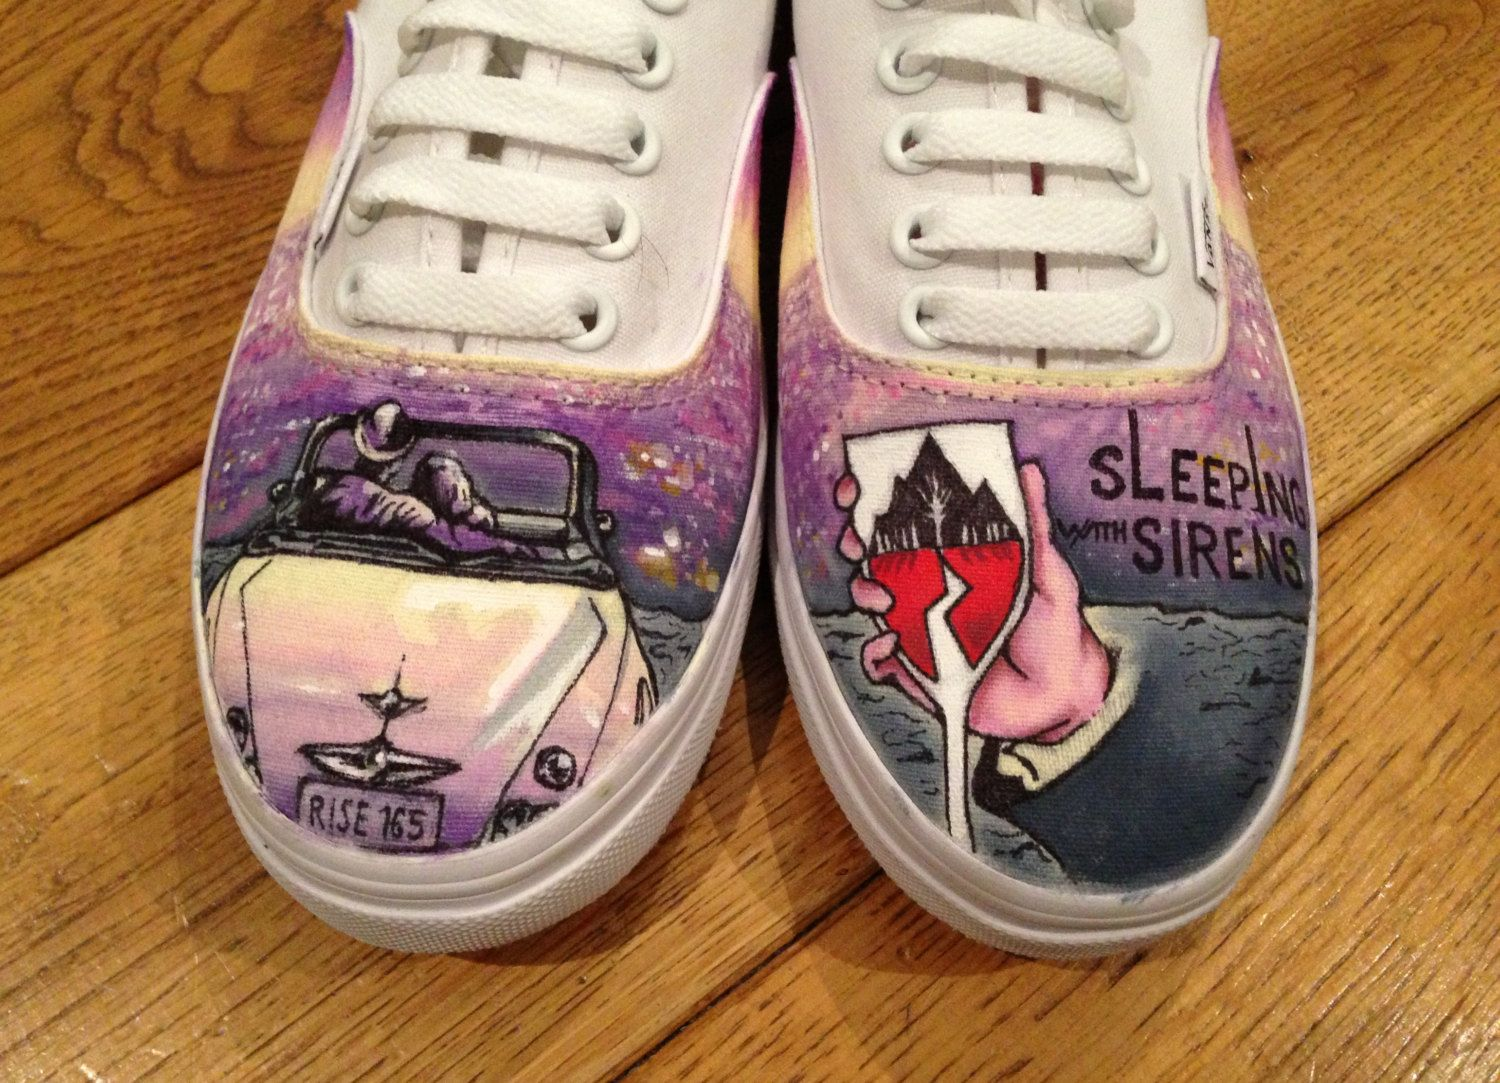 Sleeping With Sirens Fan Art - Viewing Gallery | Canvas shoes ...